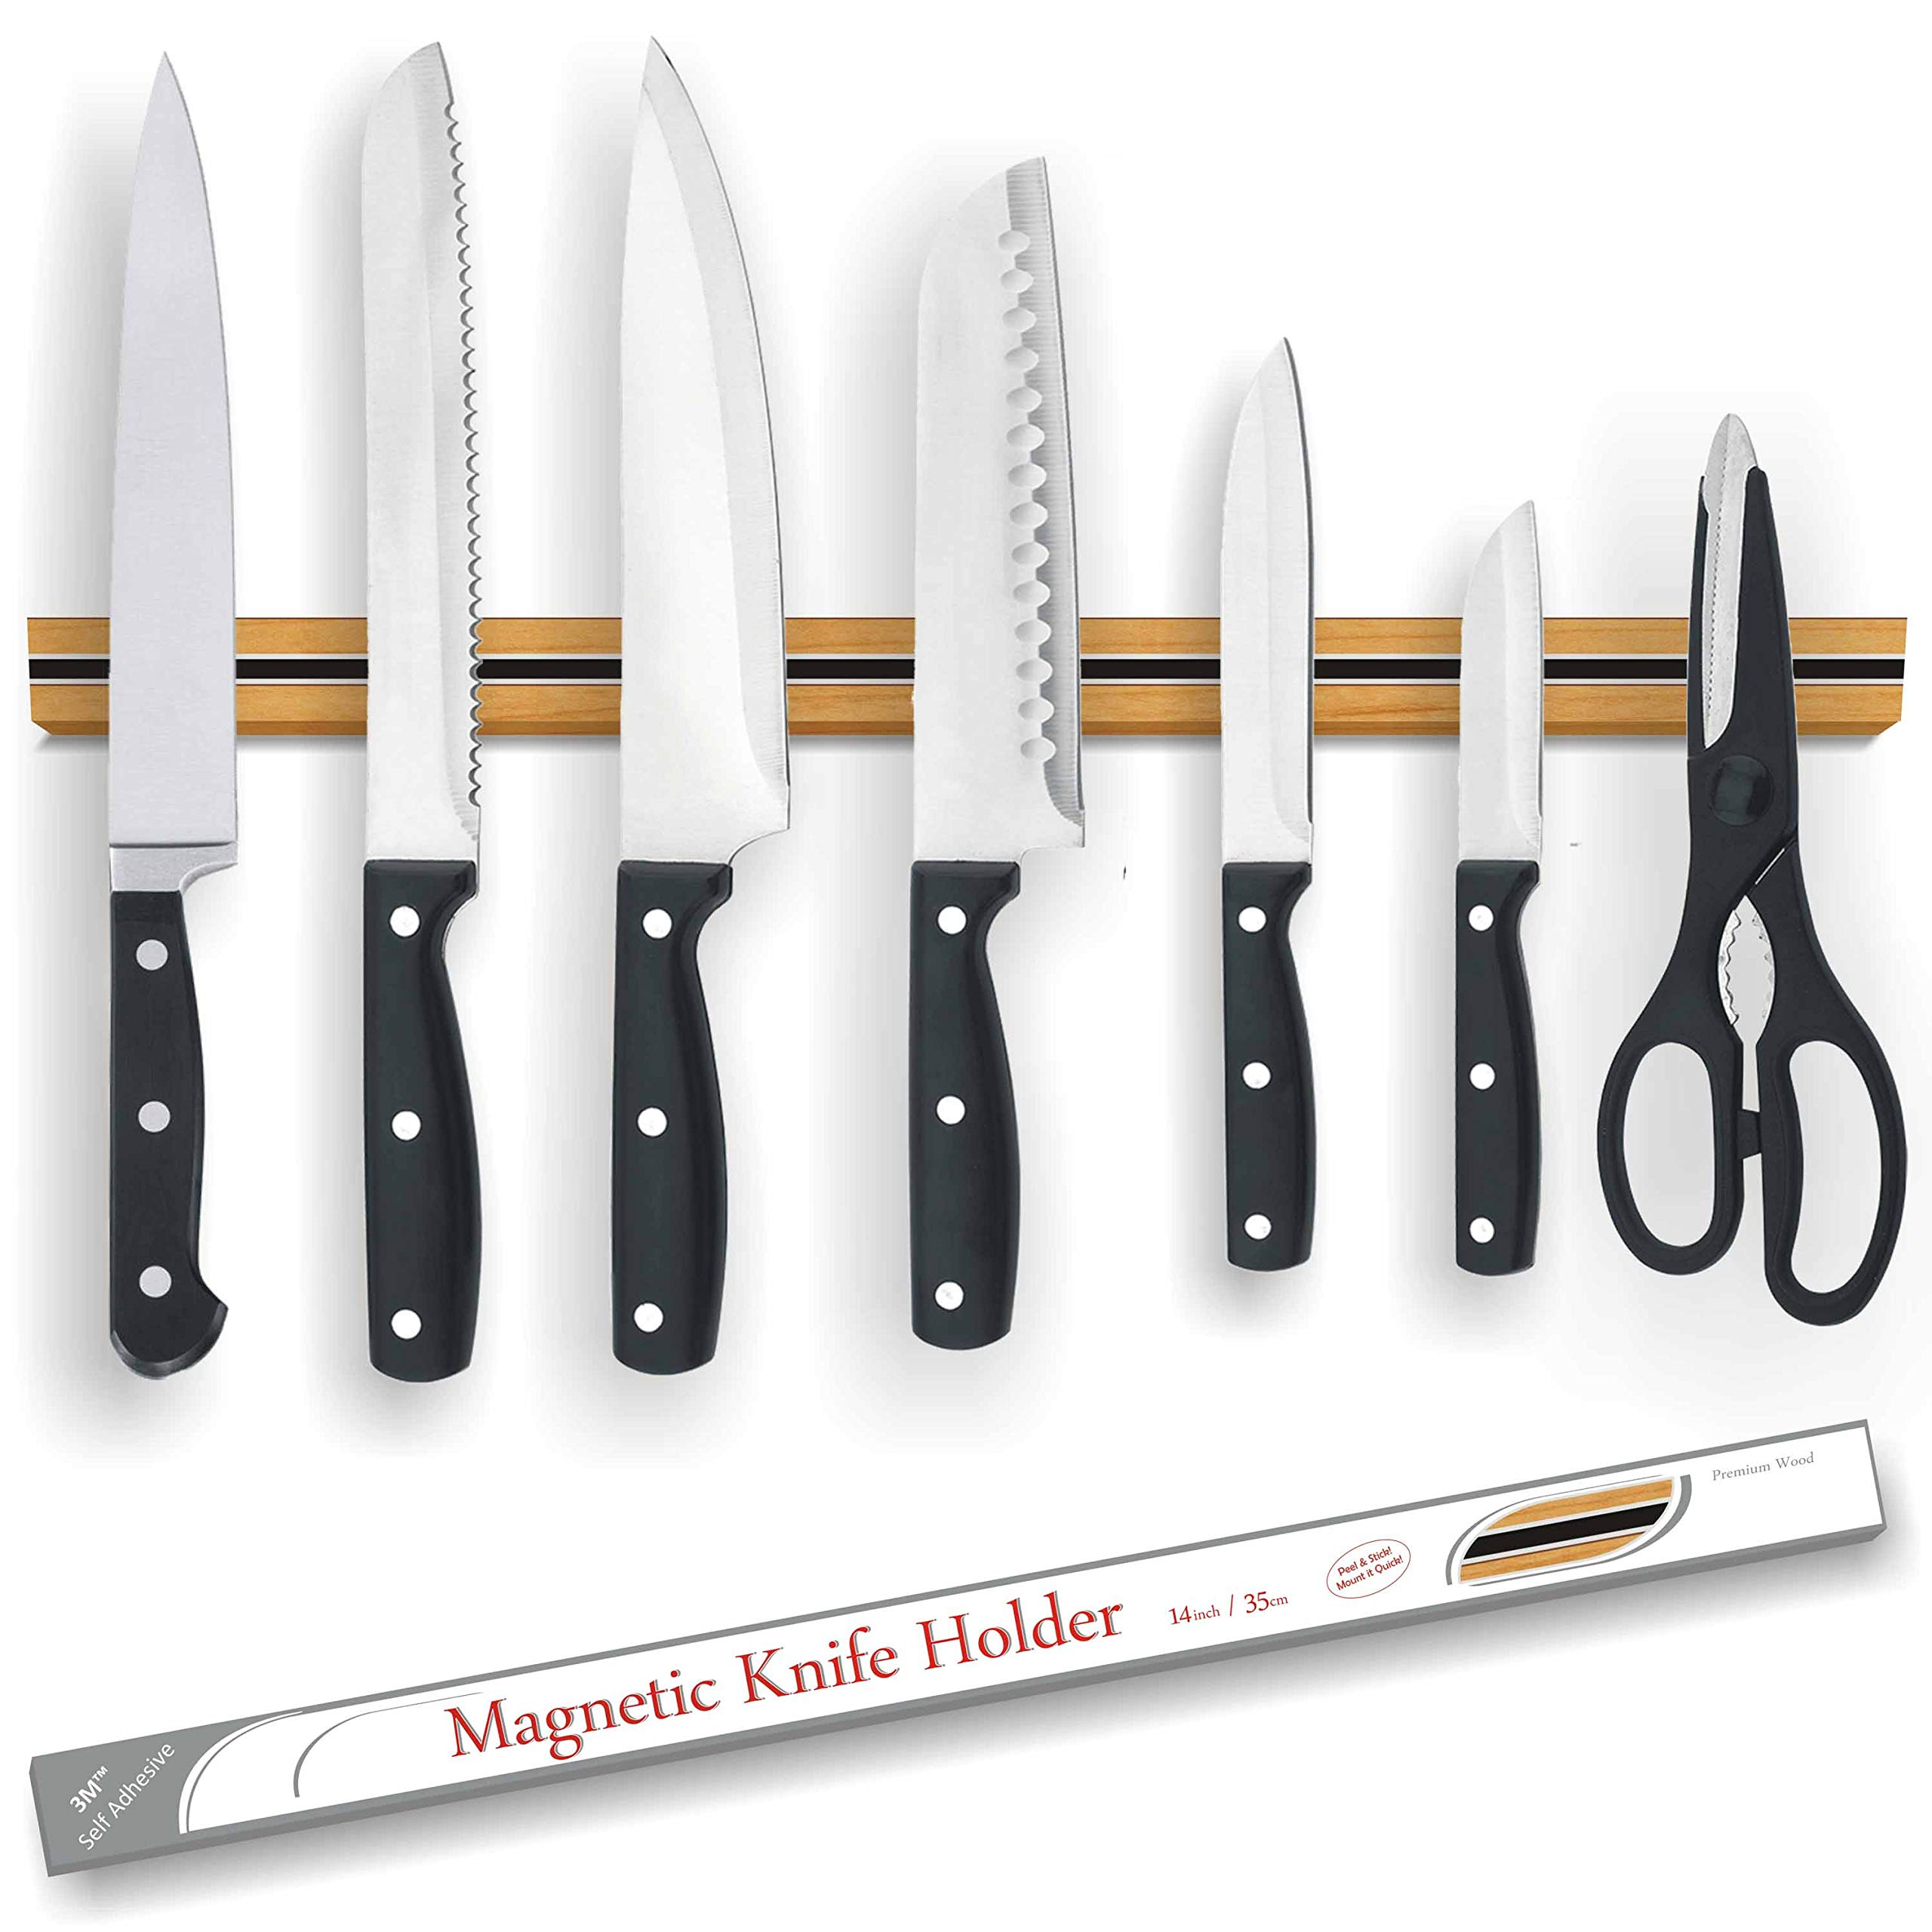 Magnetic Knife Strip 14'' - Premium Oak Wood - Self Adhesive 3M™ System - Easy Install - No Holes Drilling - Very strong magnetism - Holds All Knives - Slim Design